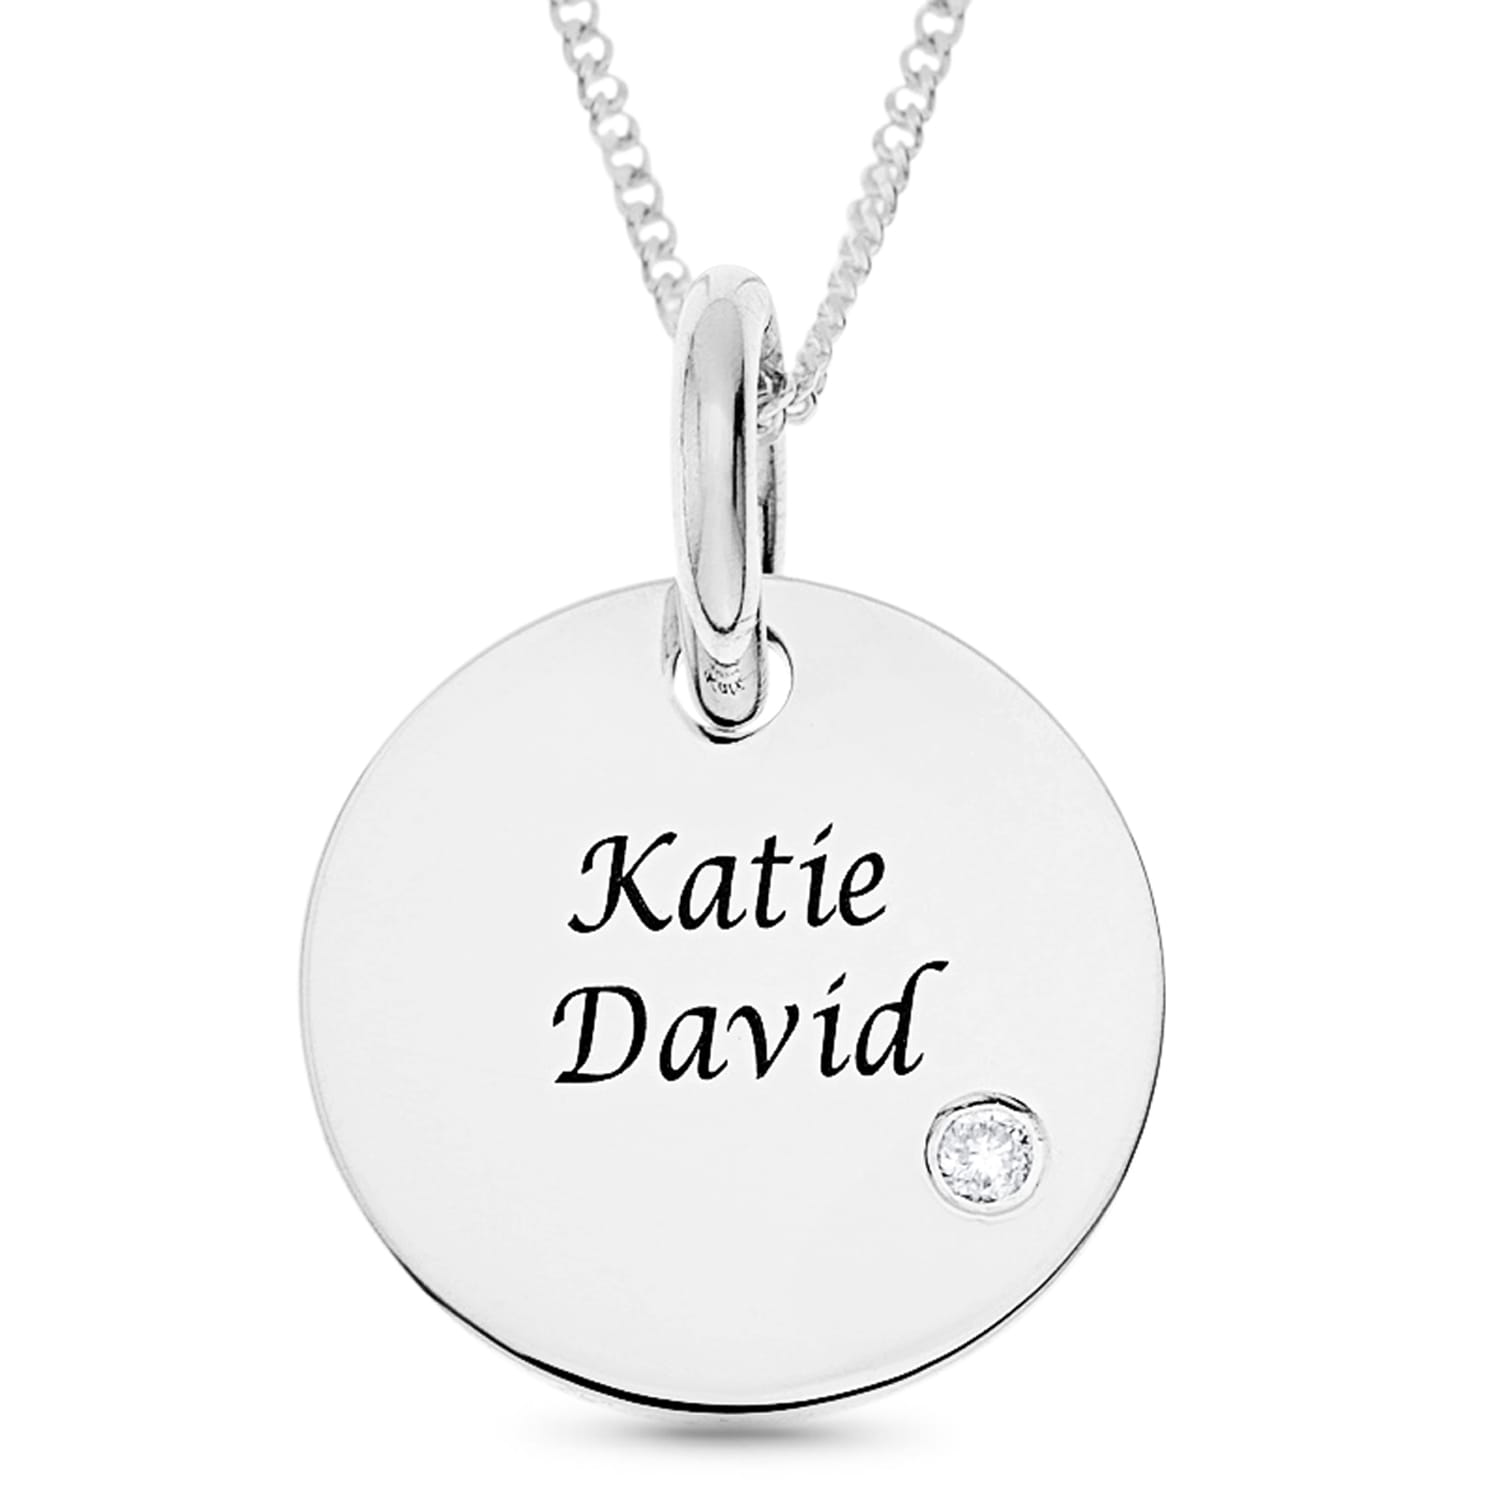 Personalised Gifts Sterling Silver Pendant with Names Engraved